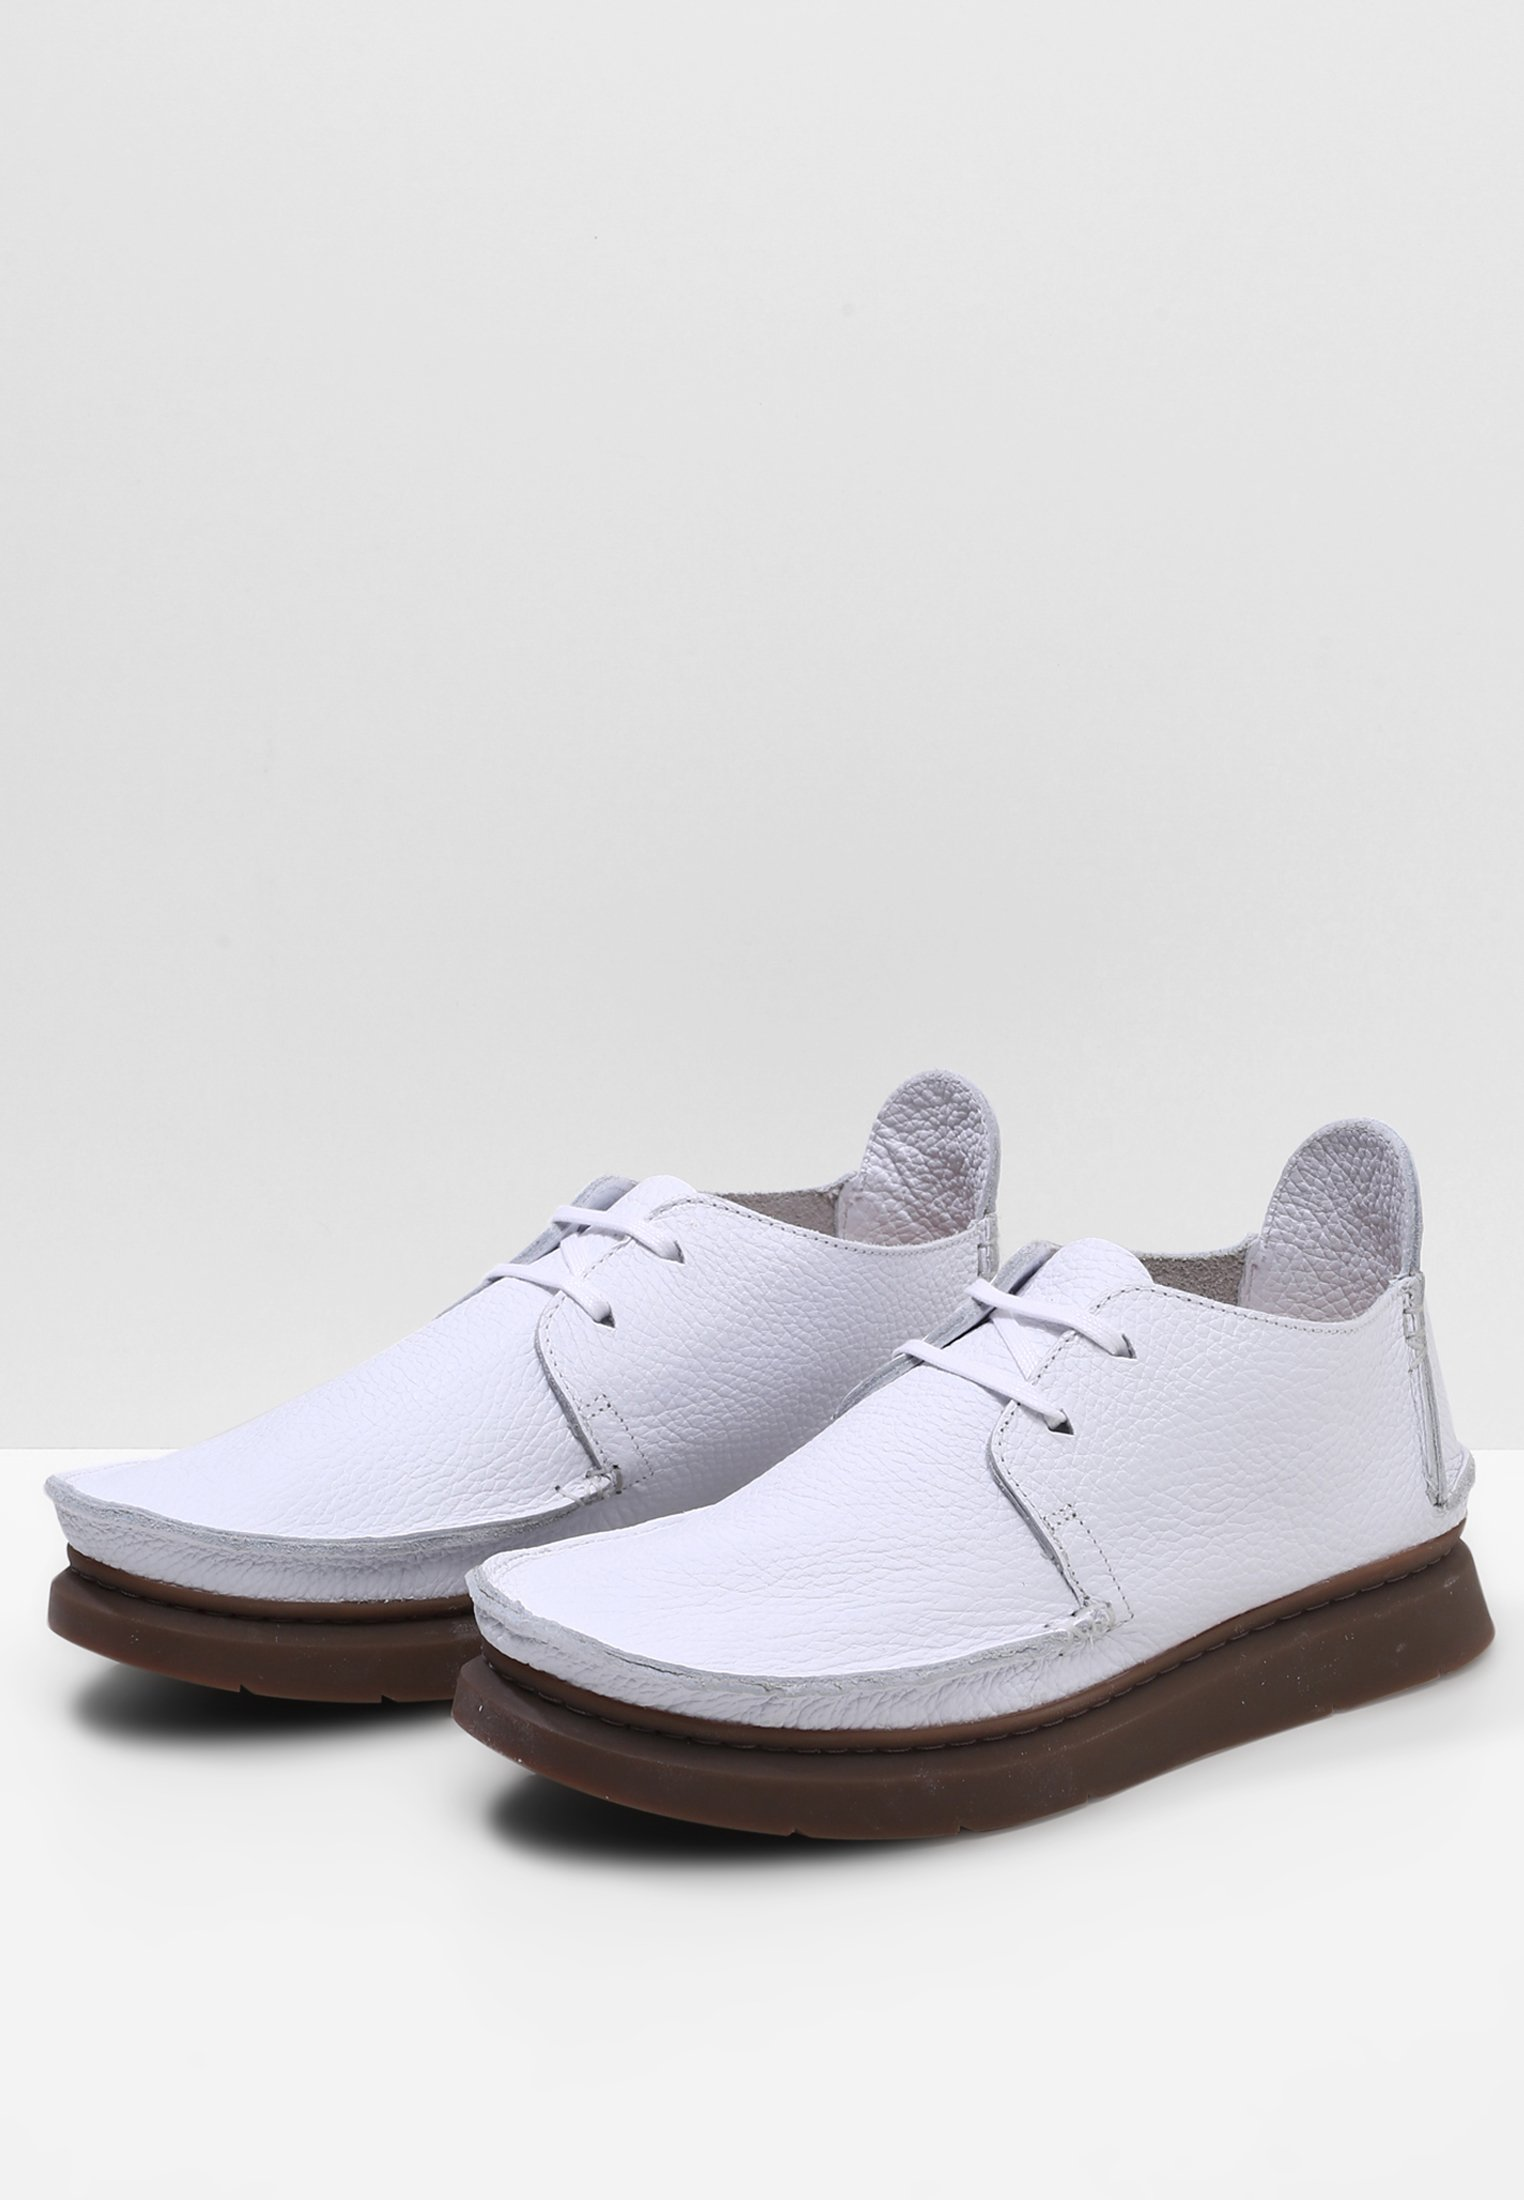 Clarks Originals Seven - Chaussures À Lacets White